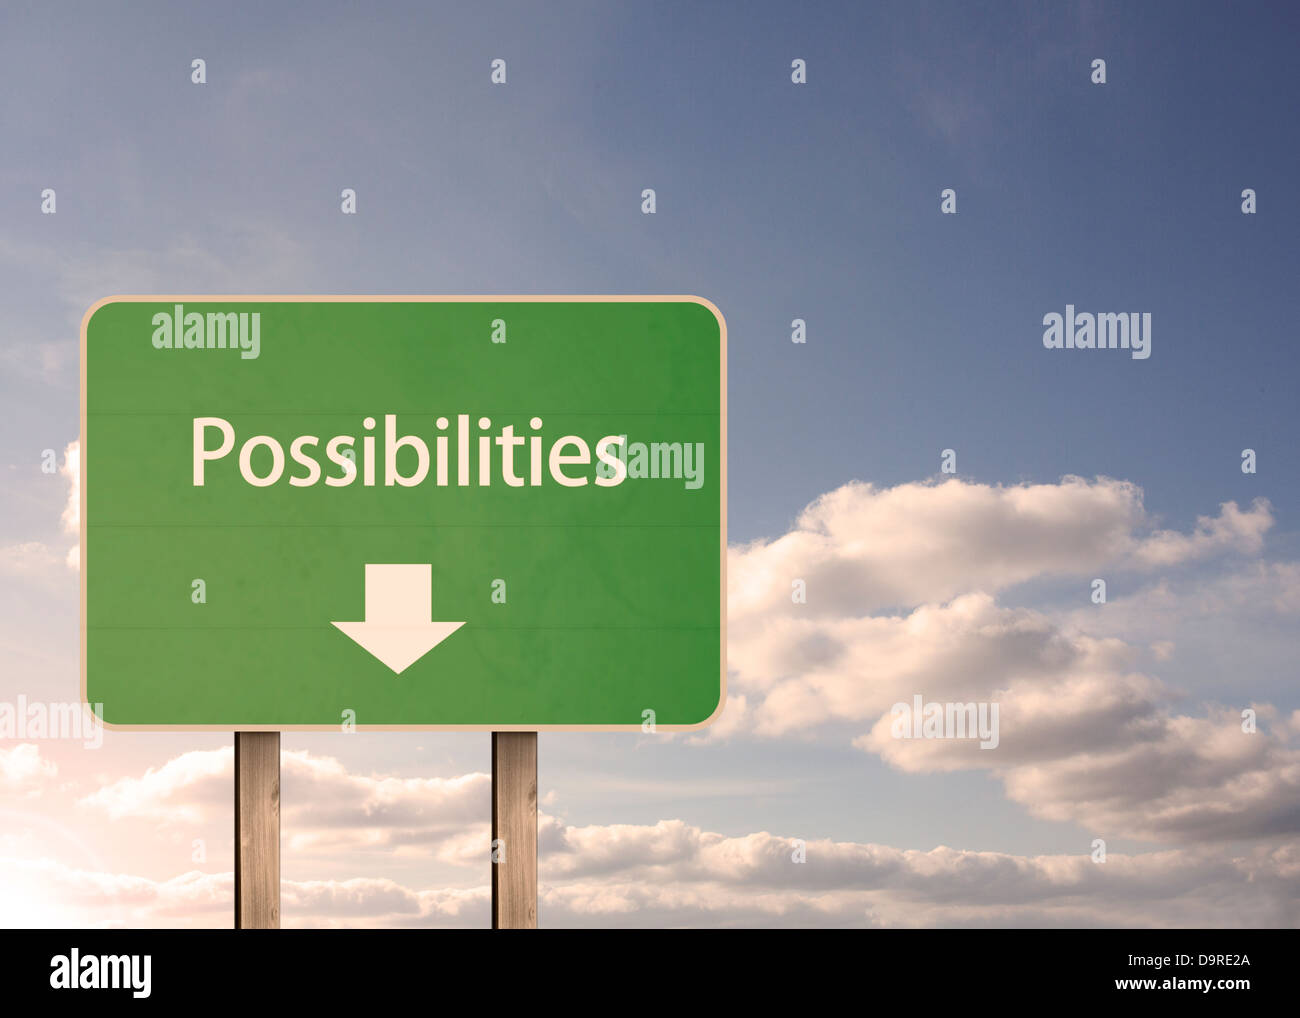 Possibilities road sign - Stock Image